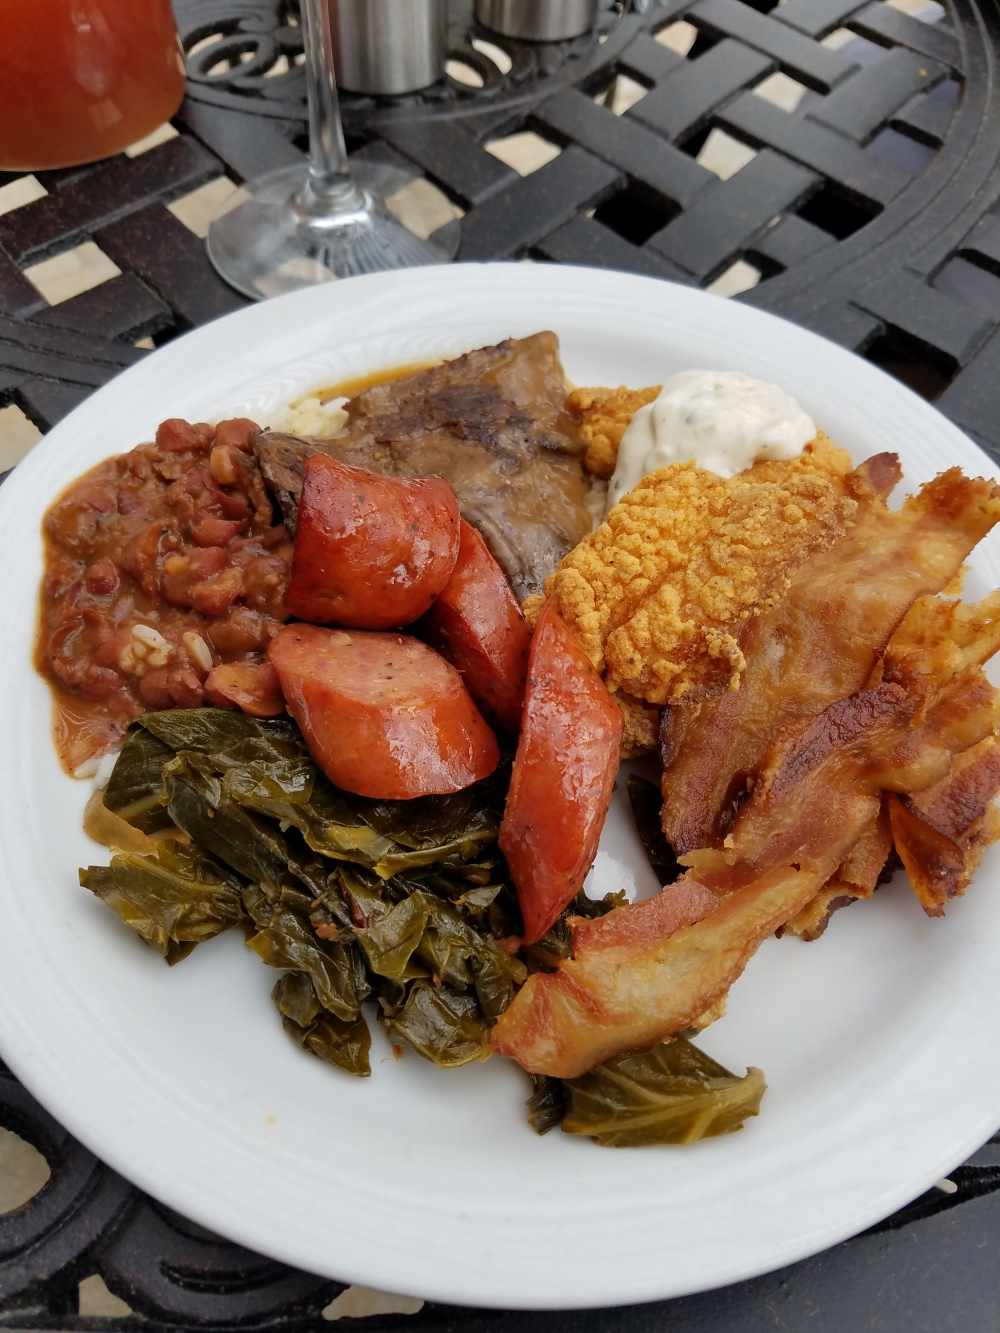 Just a sampling - greens, sausage, red beans & rice, smothered steak, catfish and slice of bacon